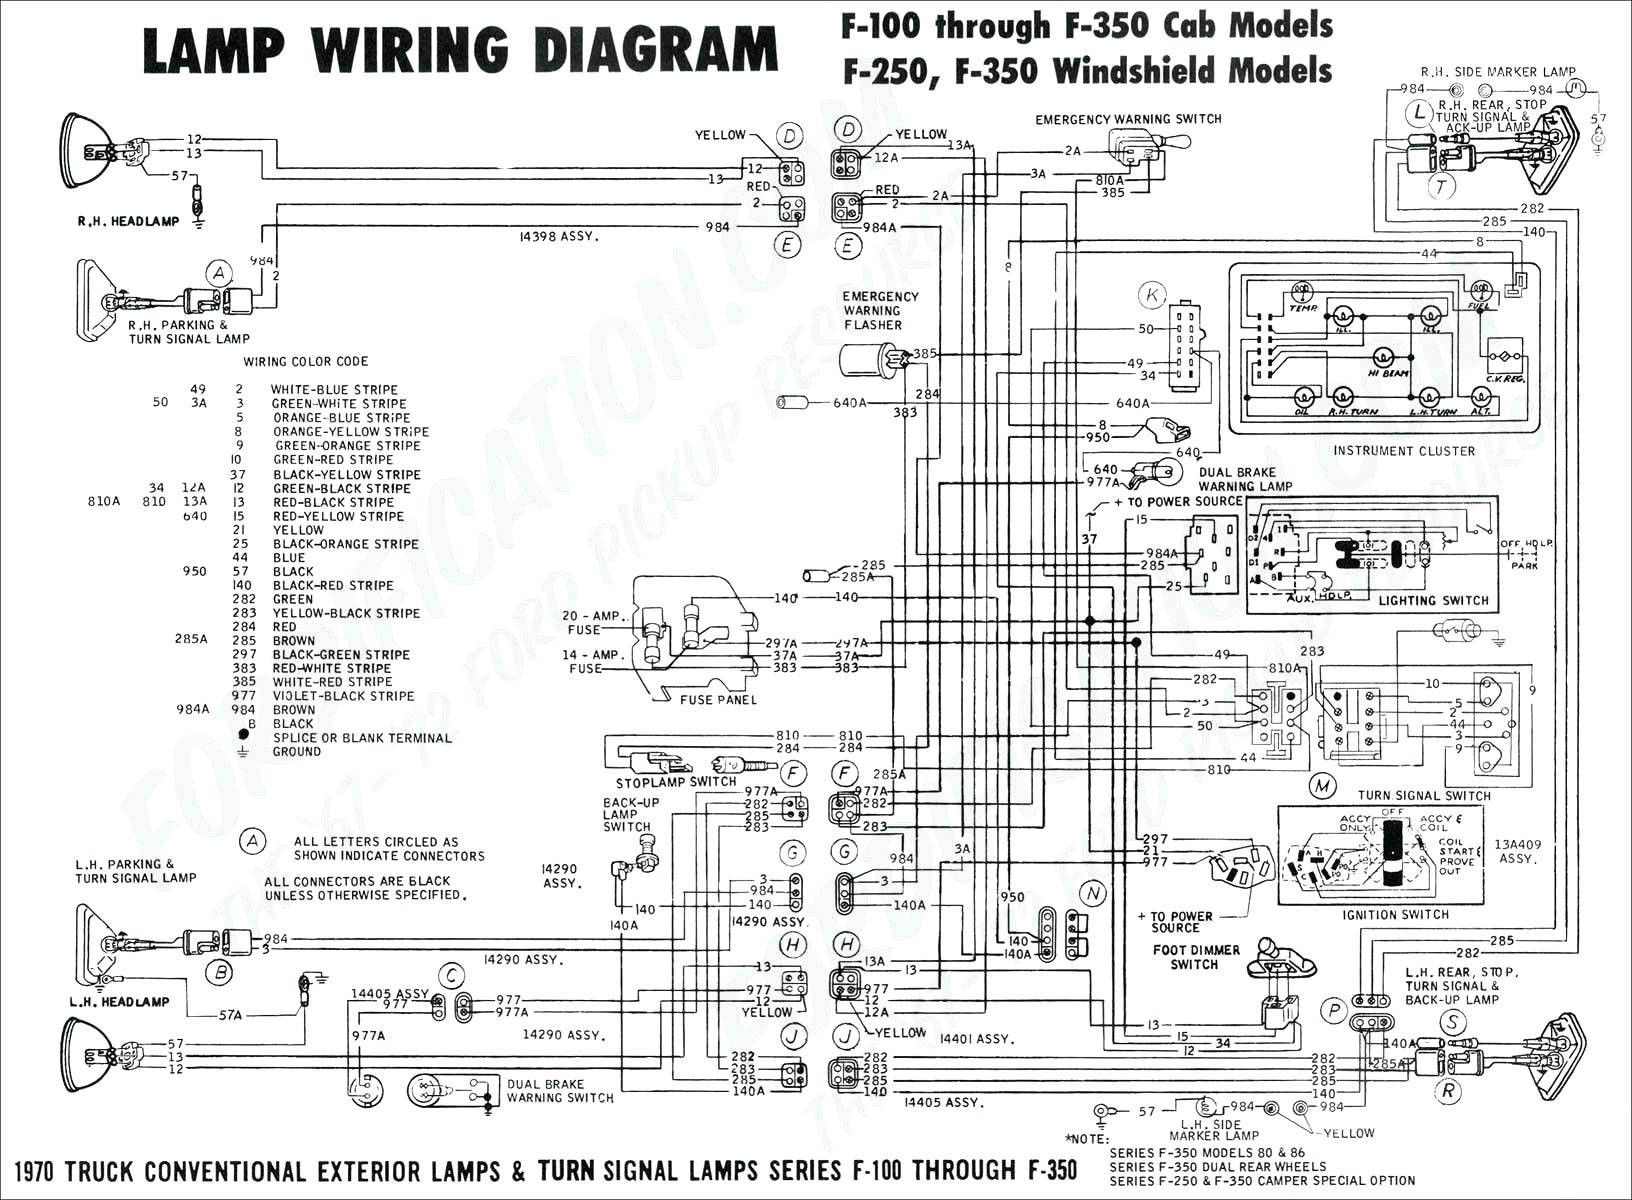 Gmc Sierra Tail Light Wiring Diagram Trailer Wiring Diagram Electrical Wiring Diagram Circuit Diagram